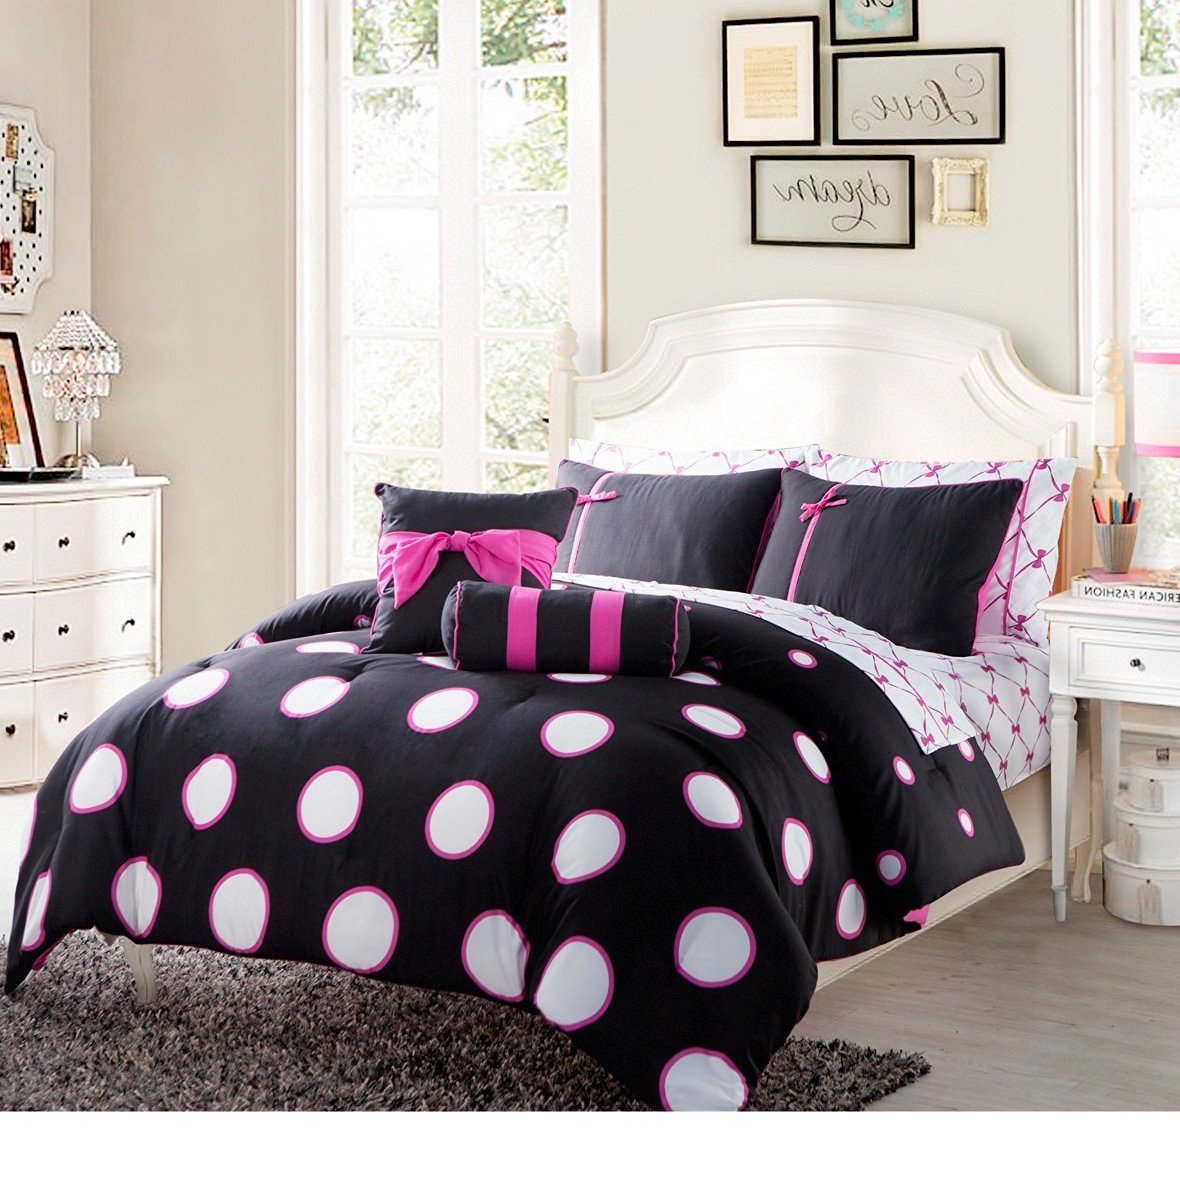 8 Piece Twin Black Pink Contemporary Bed In A Bag With Sheet Set For Teen Girls, High Class Bedding, Polyester Fabric, Polka Dot Pattern, Machine Washable, Dark Black, Medium Pink, White Dot